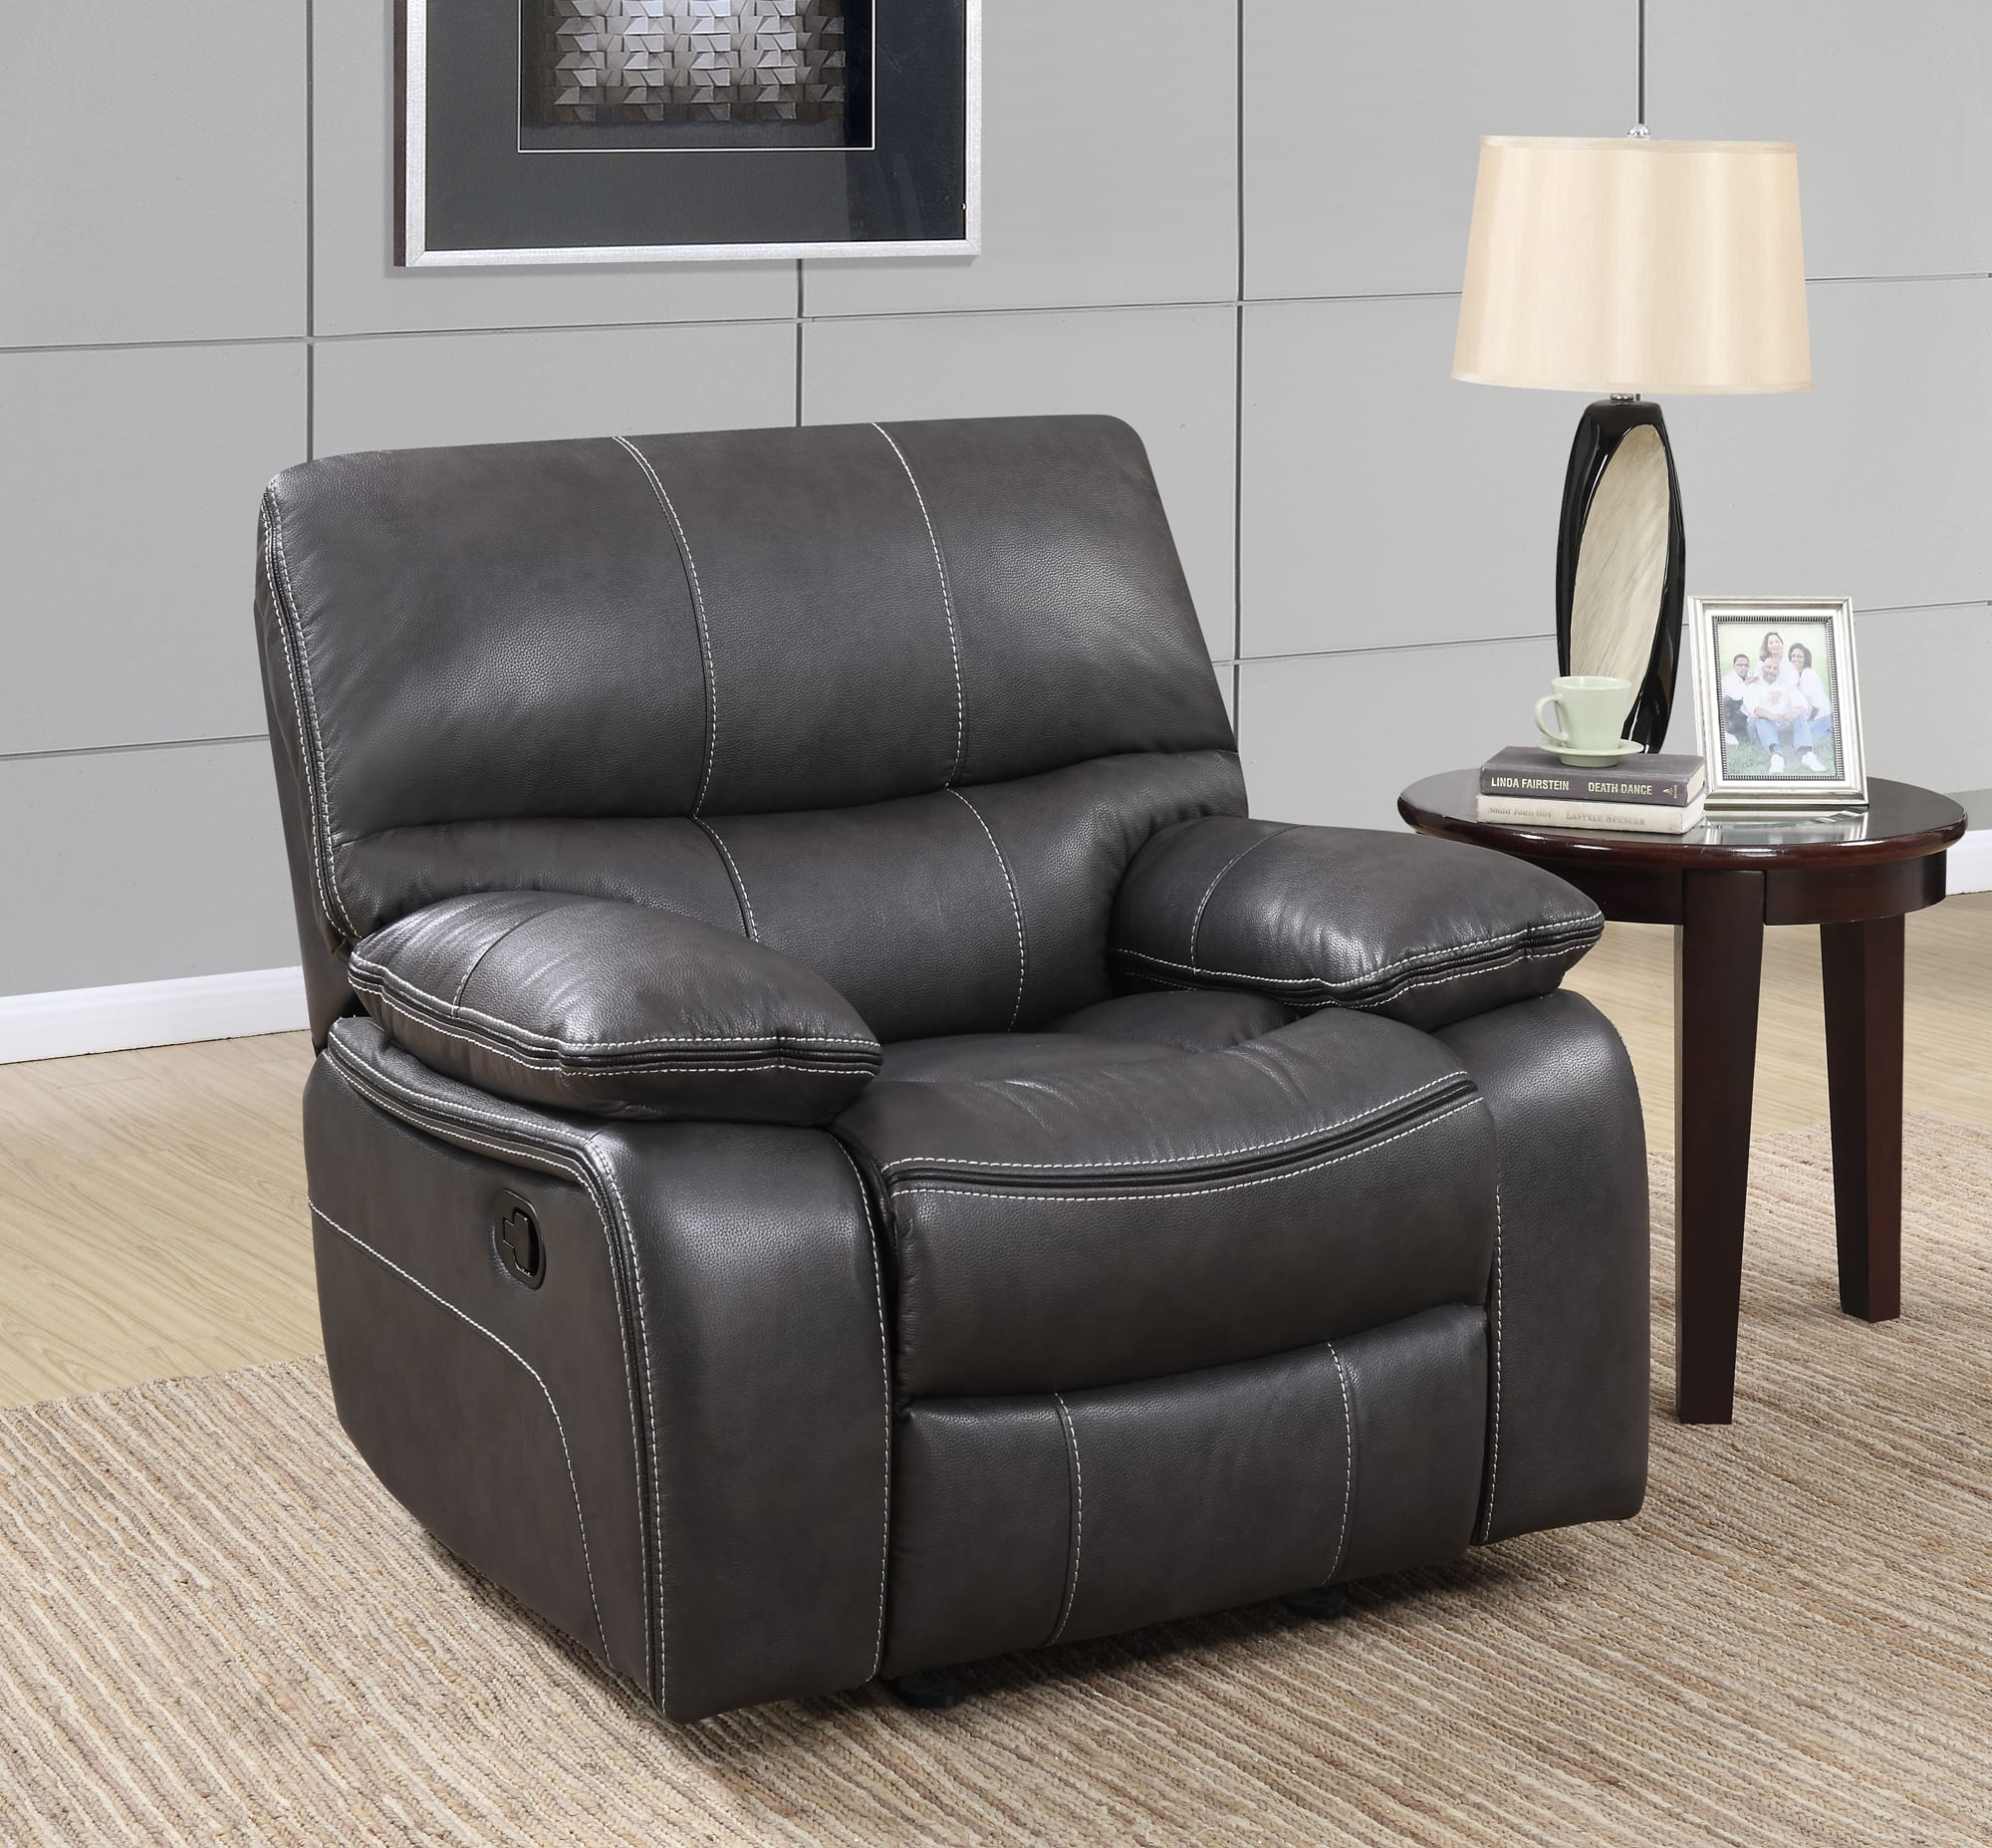 & U0040 Grey/Black Leather Glider Reclining Chair by Global Furniture islam-shia.org